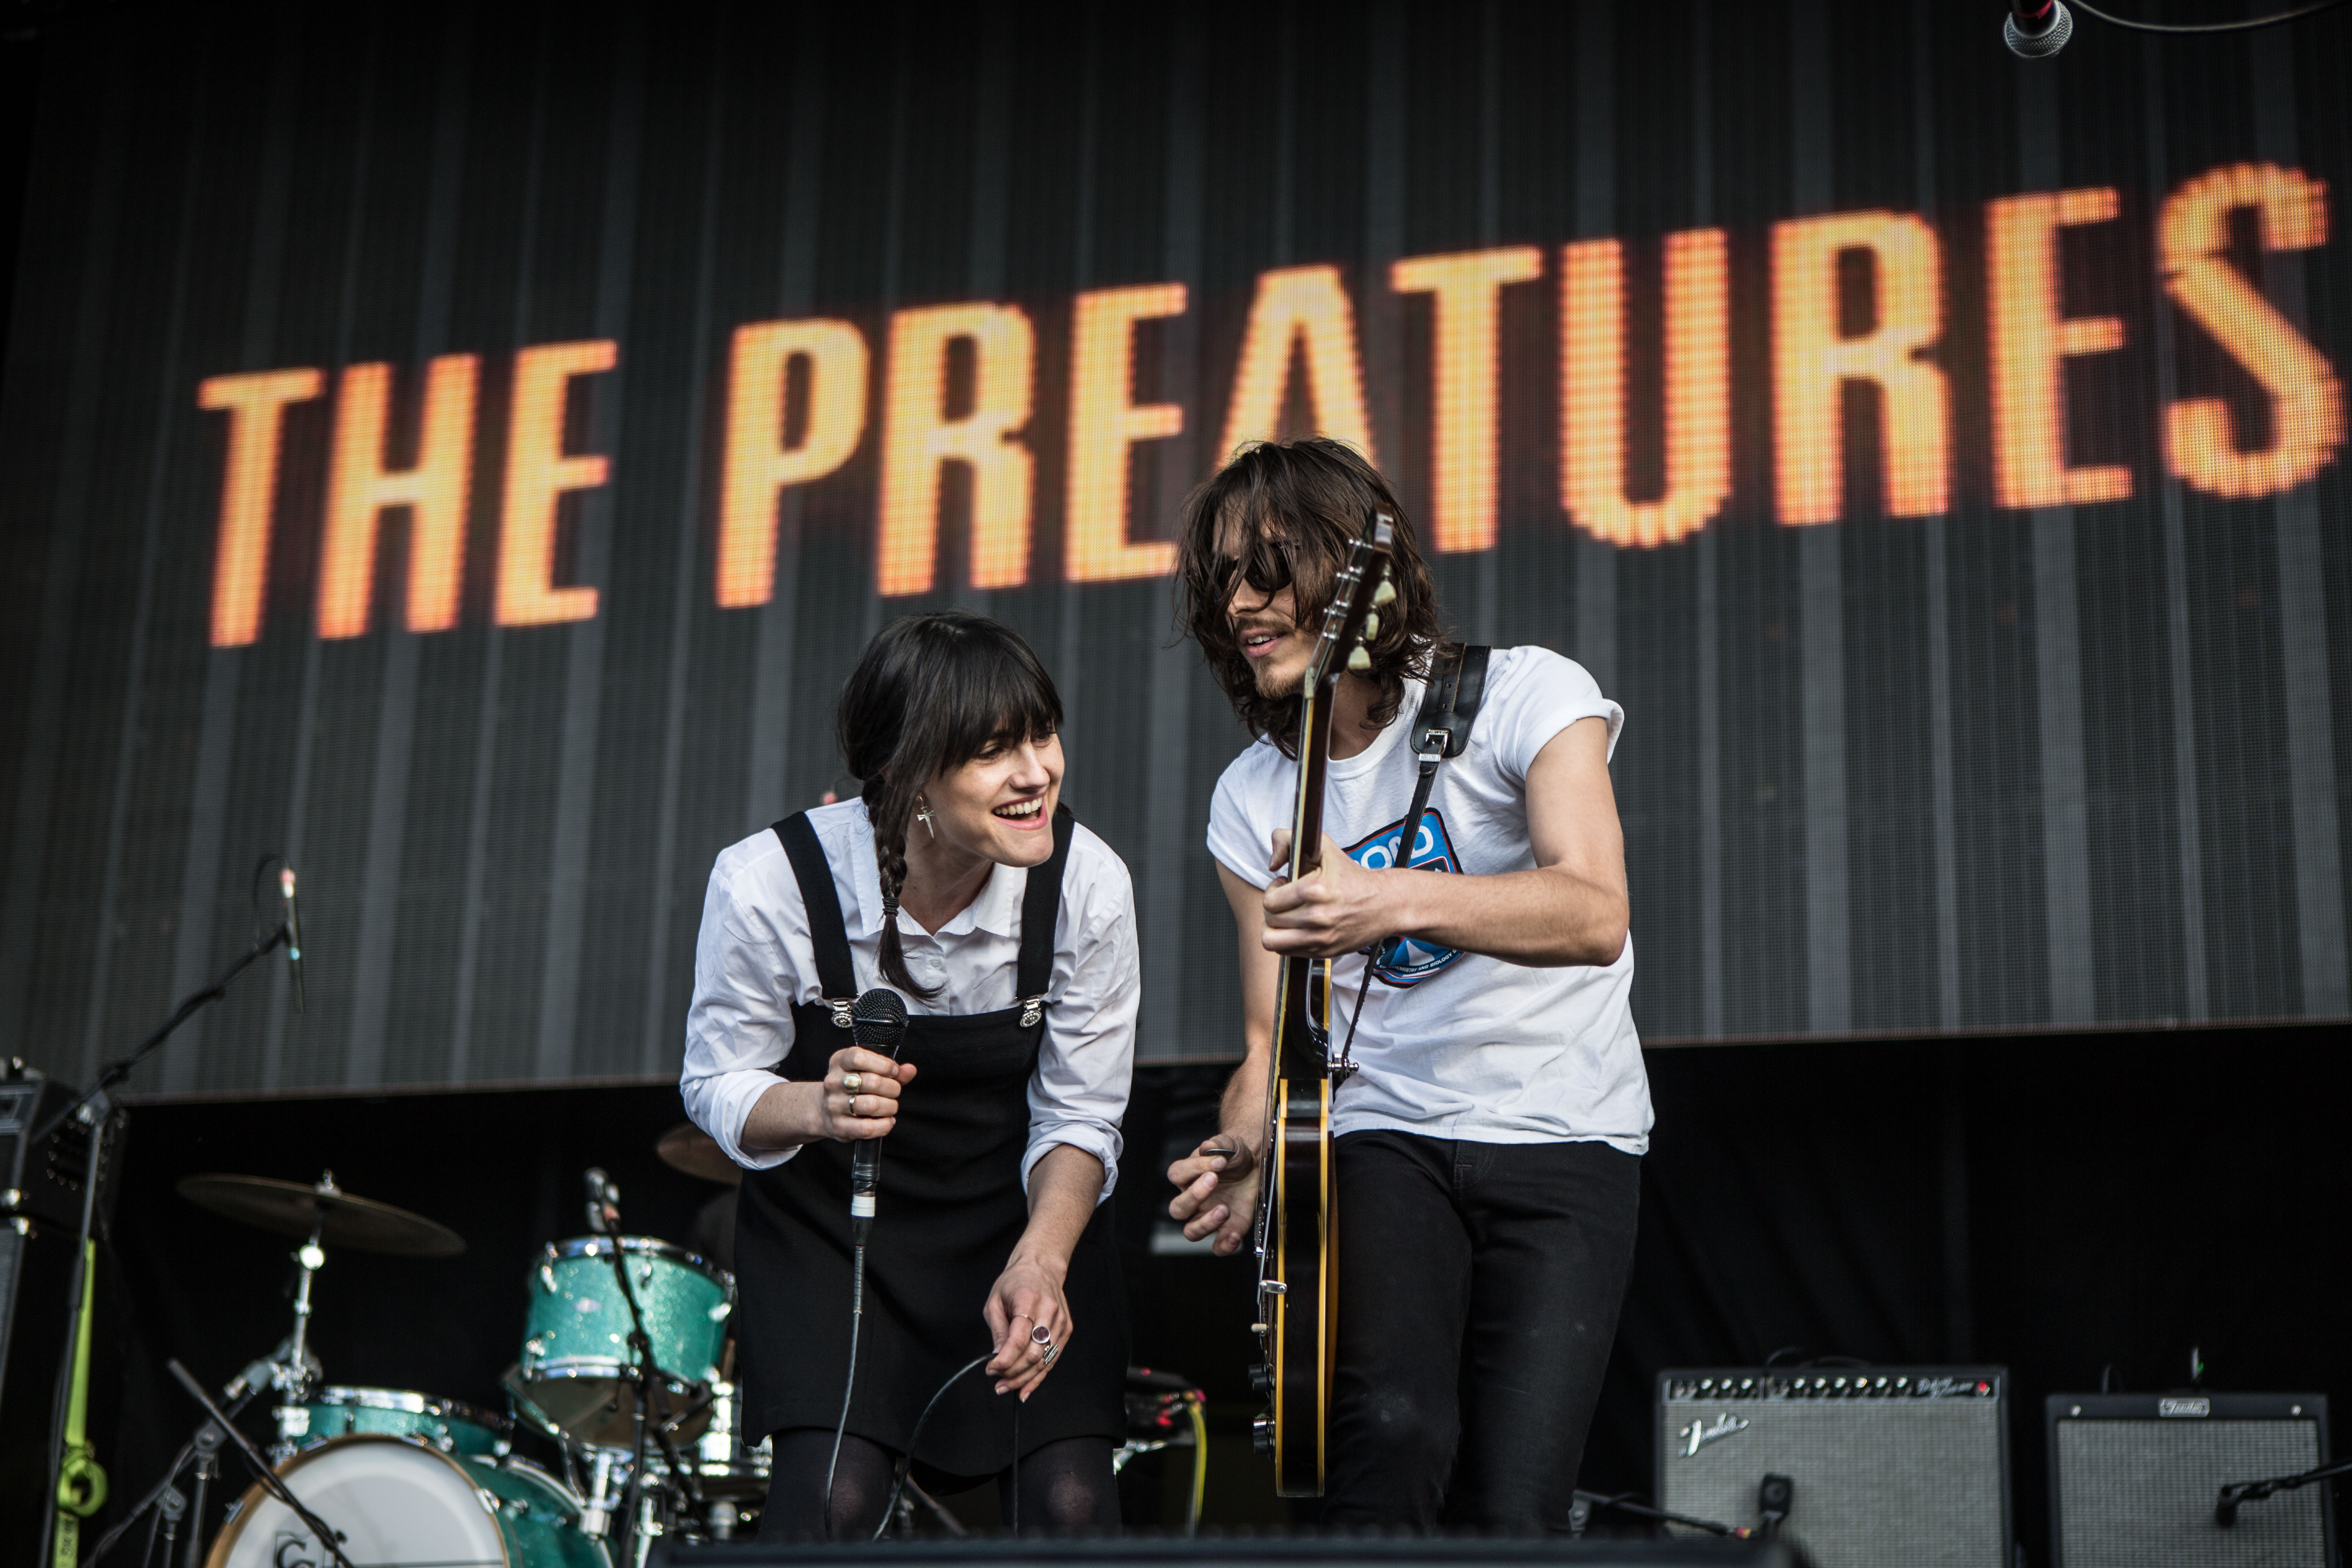 Preatures GTM15-20